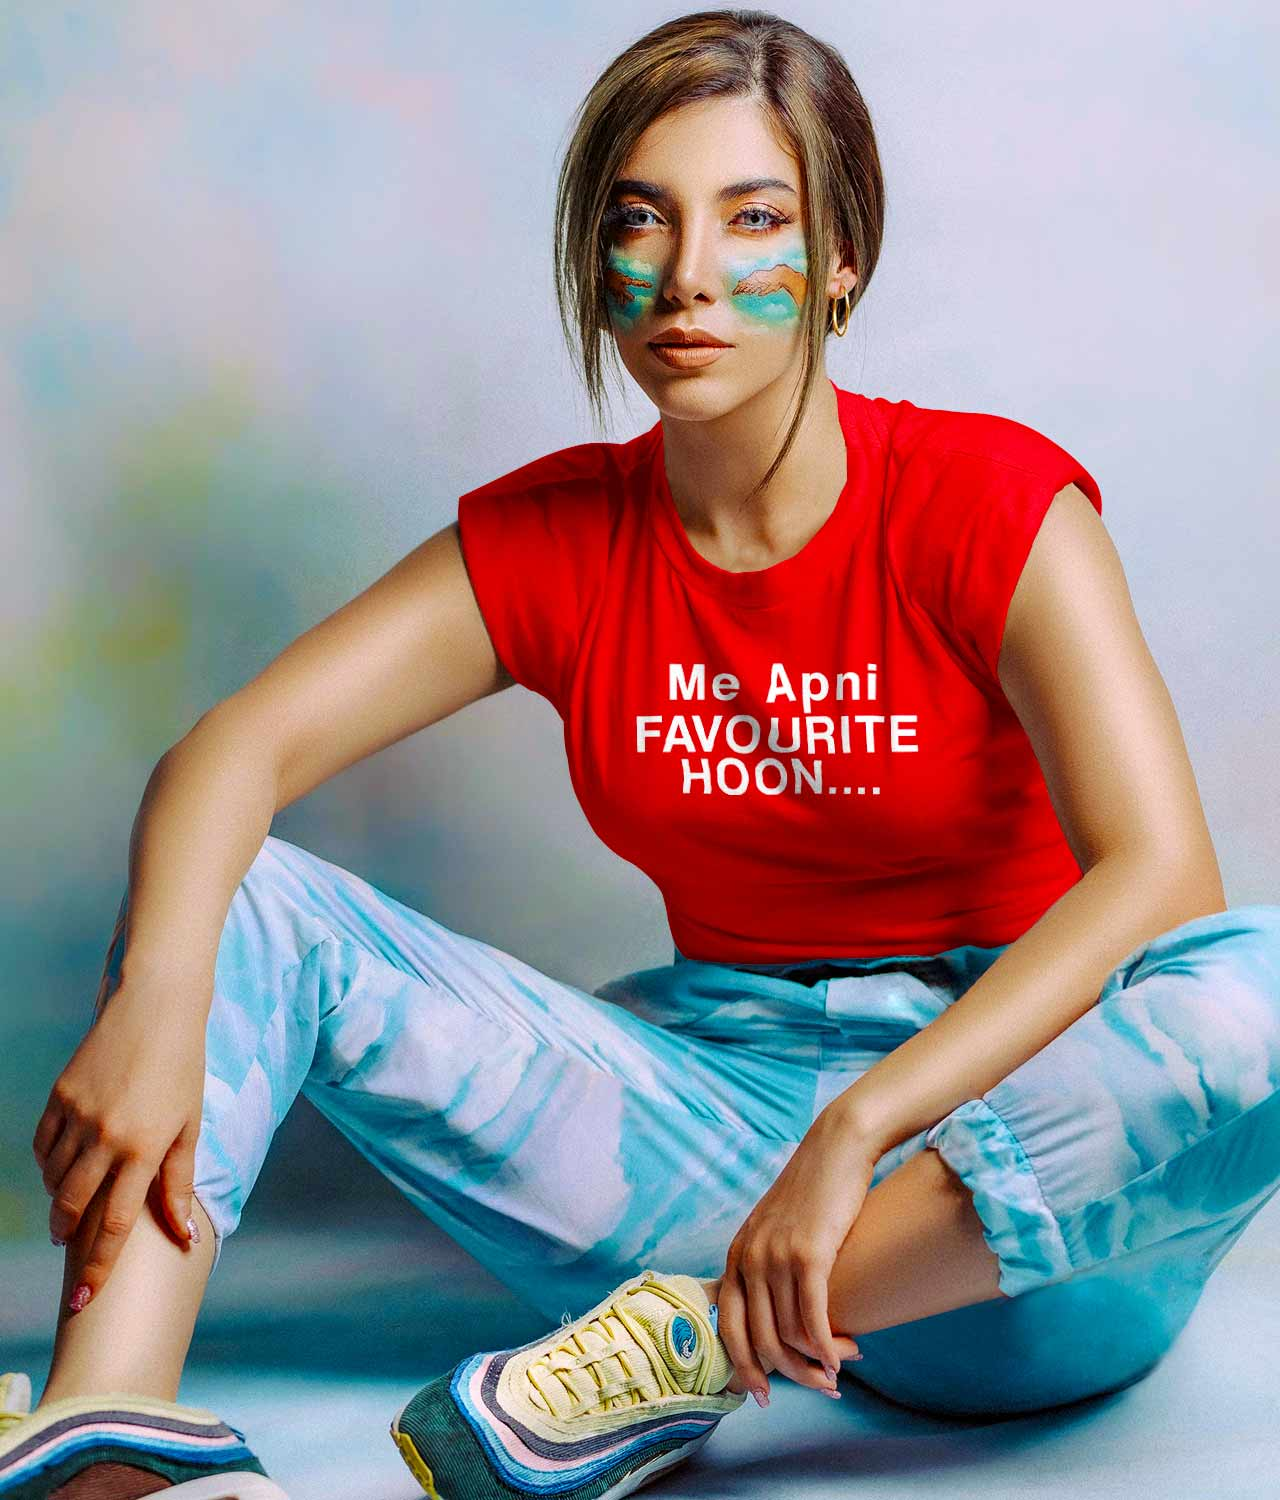 Buy Graphic T shirts For Women At Low Price RagaFab